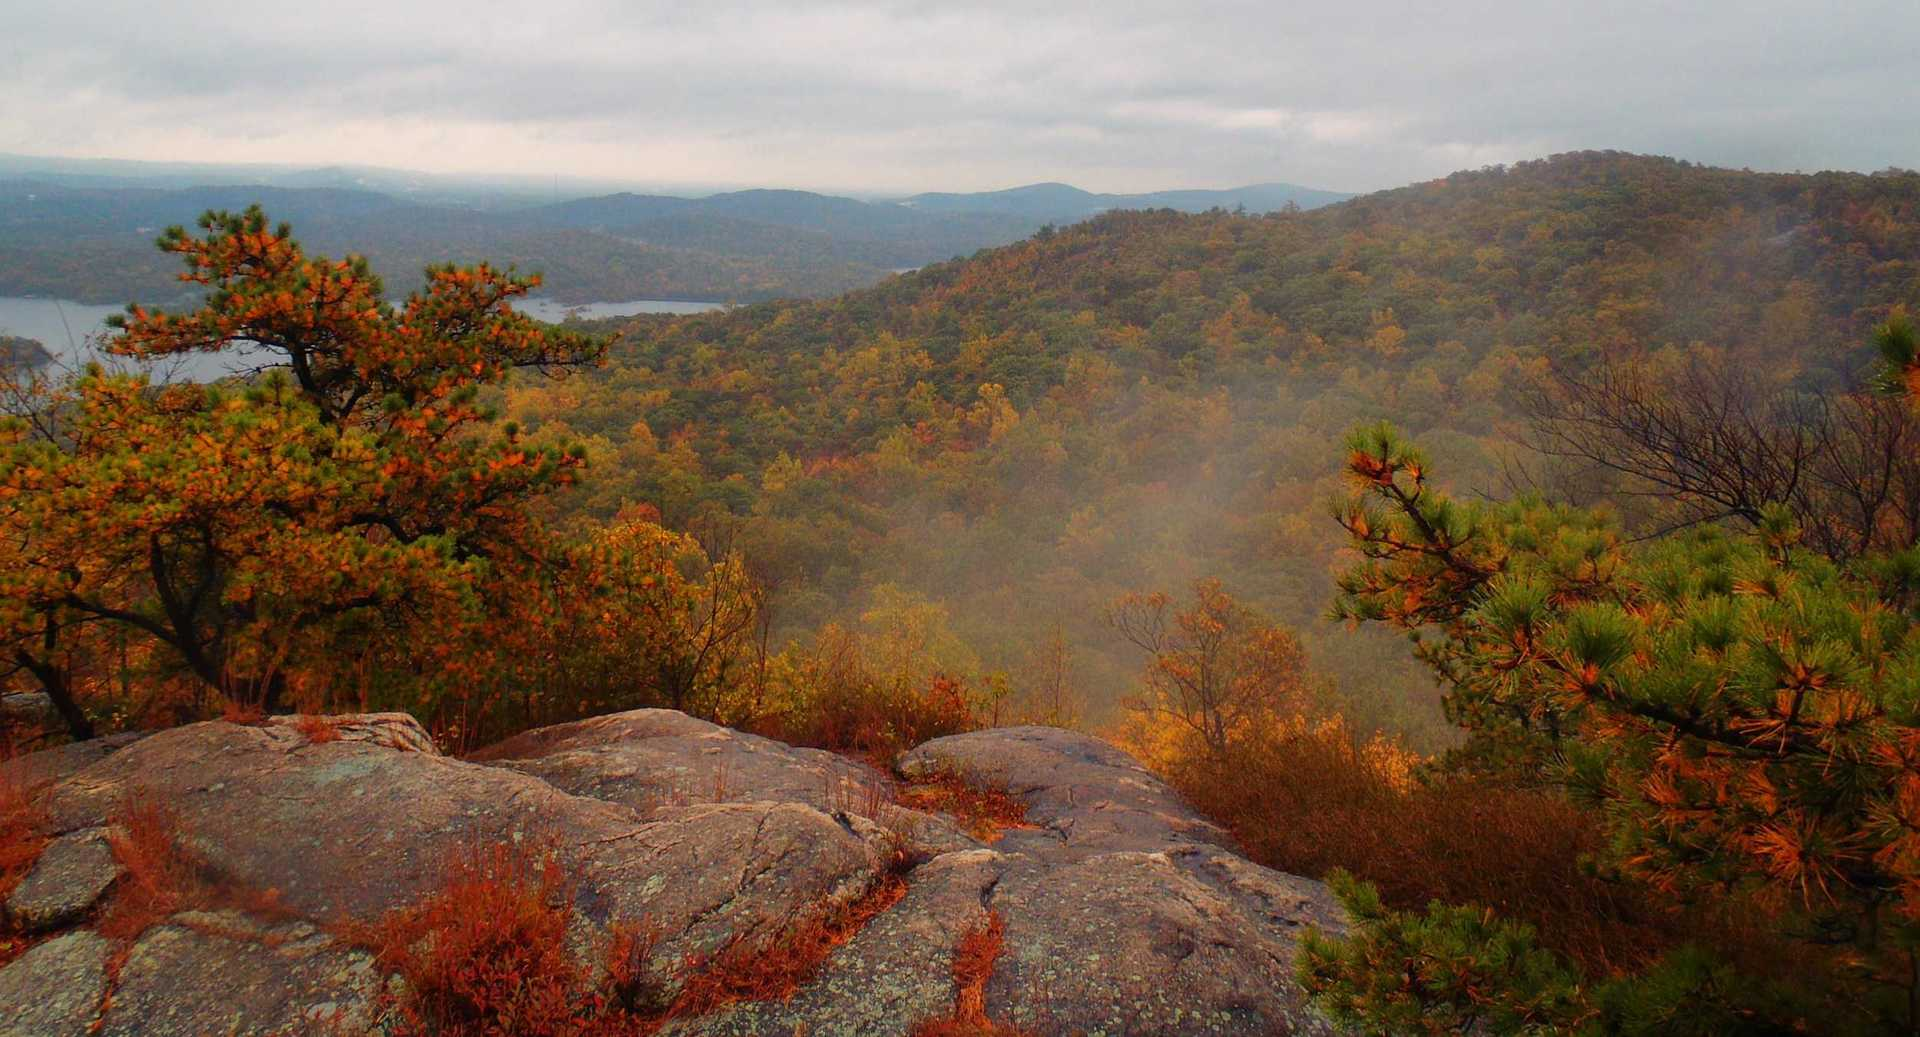 Devil's Path in the Catskill Mountains